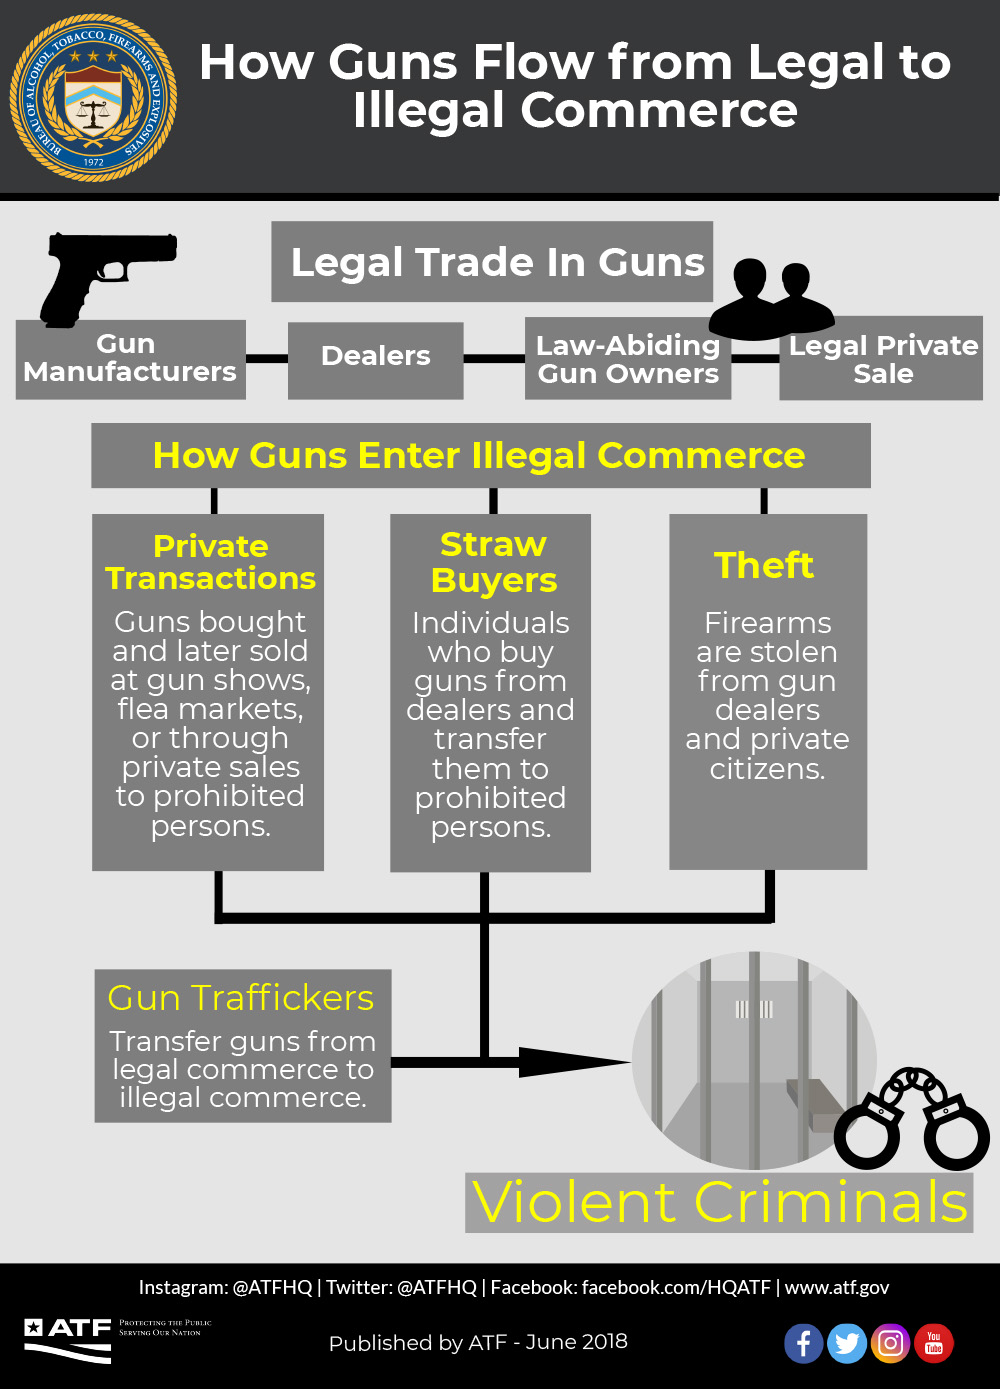 How Guns Flow from Legal to Illegal Commerce